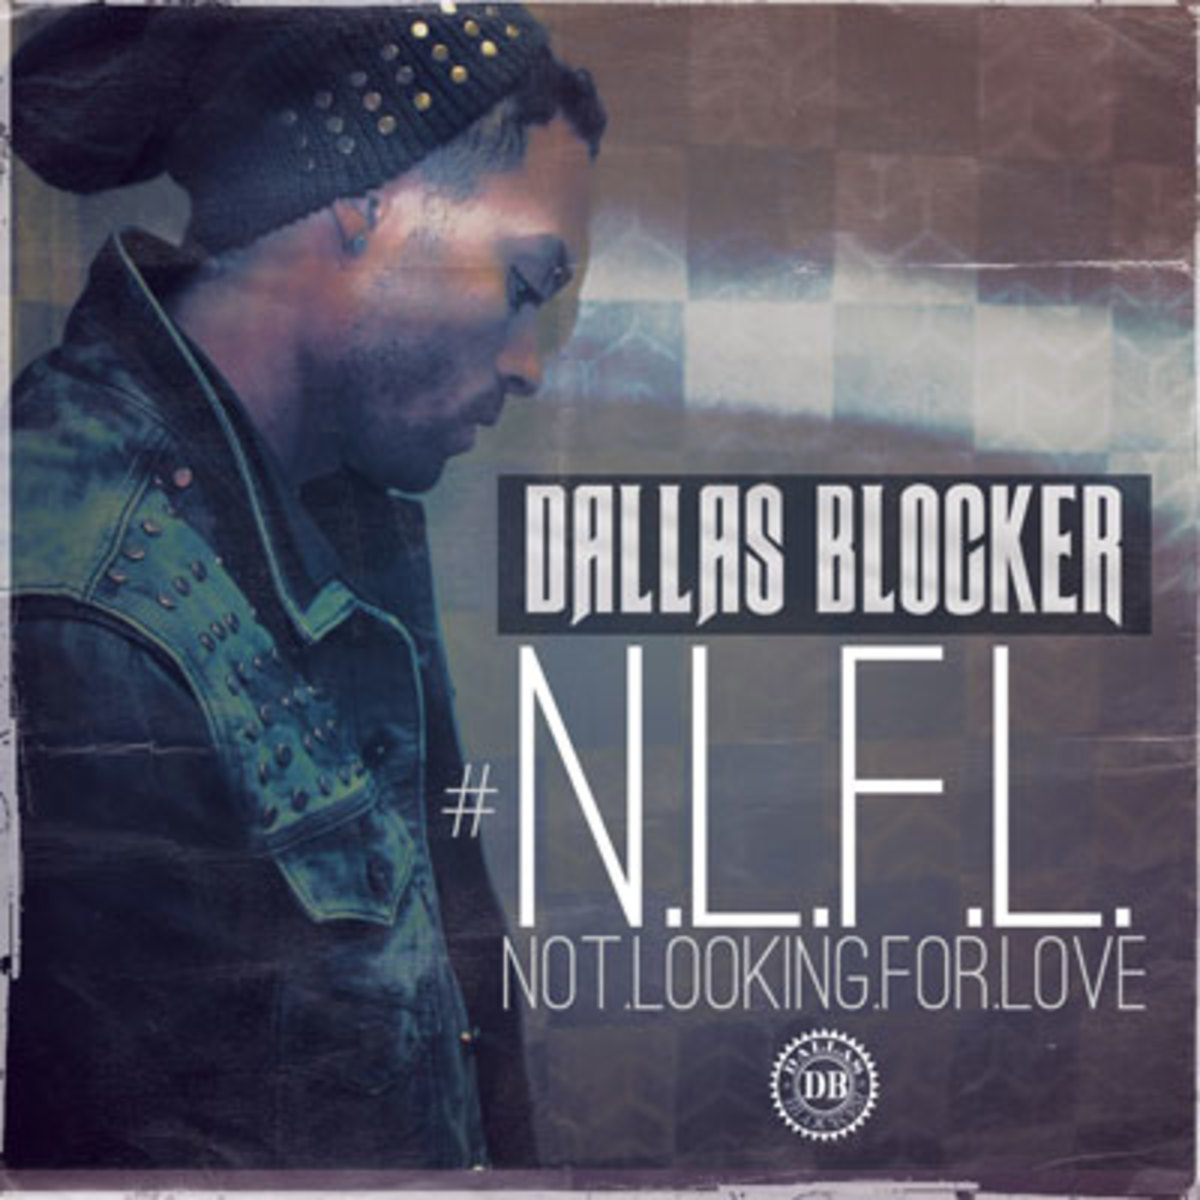 dallasblocker-nlfl.jpg